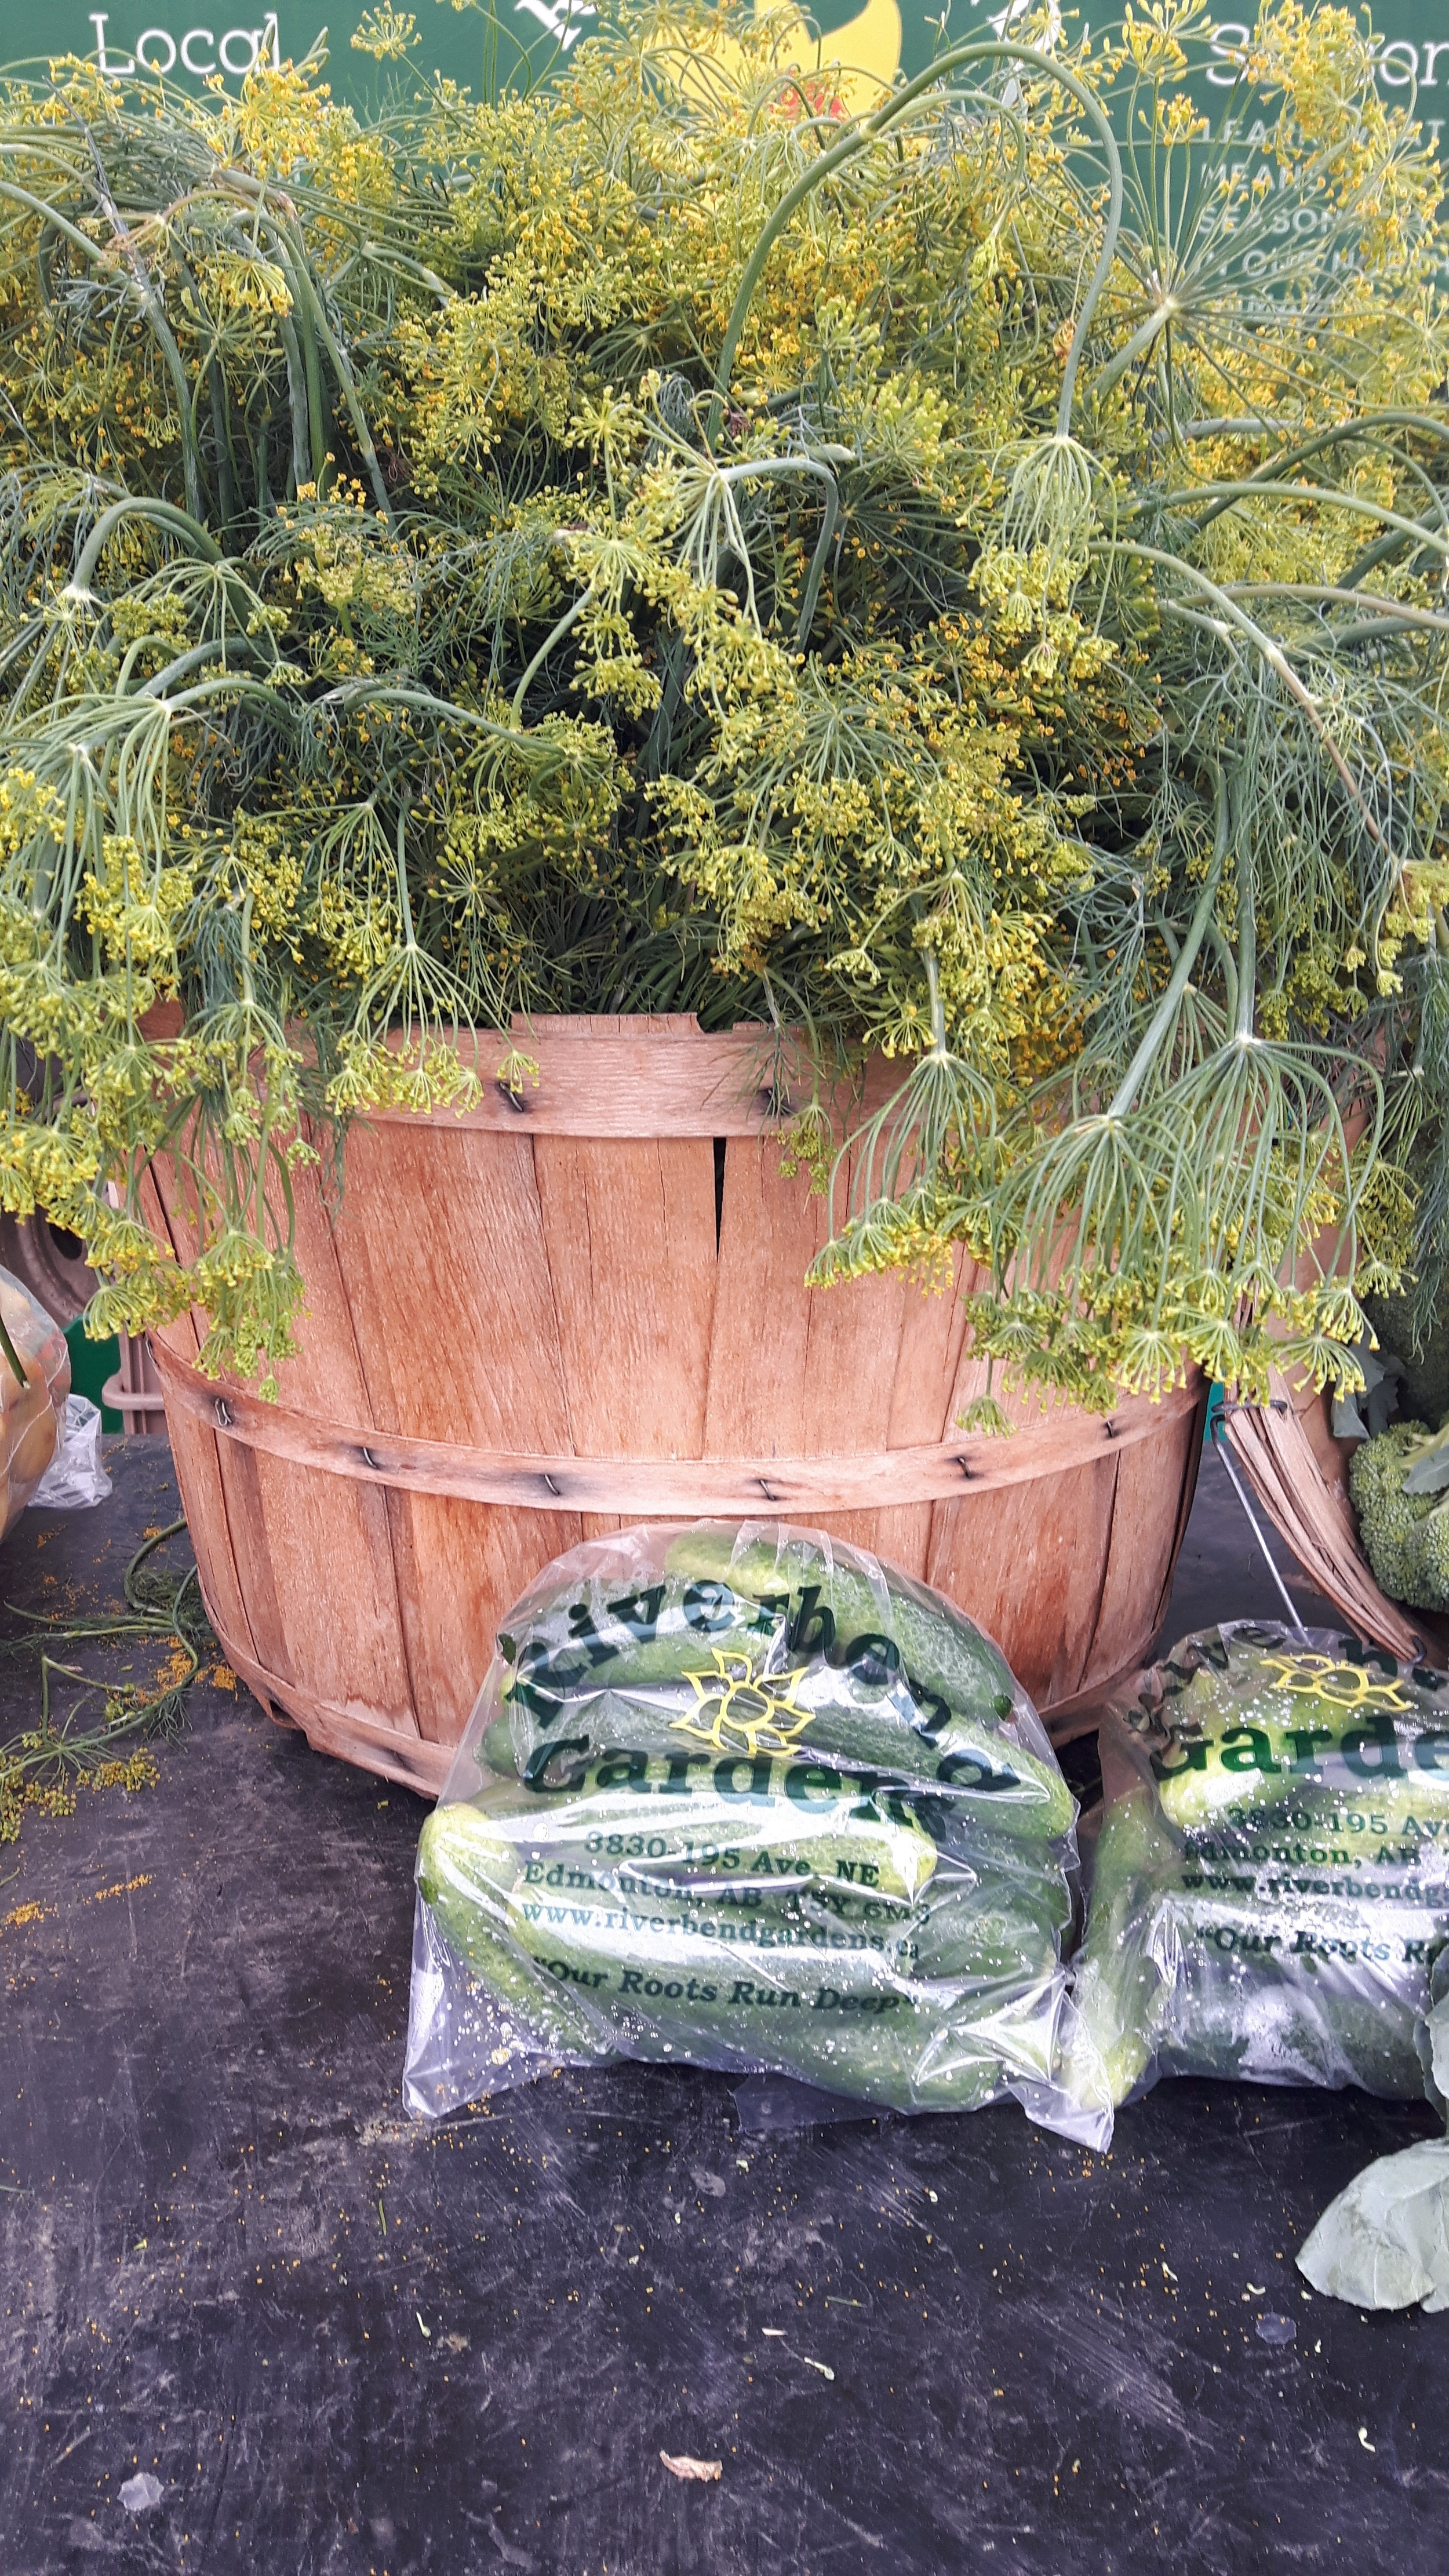 Our photo of the week features the gorgeous dill and cucumber display from Riverbend Gardens last market.